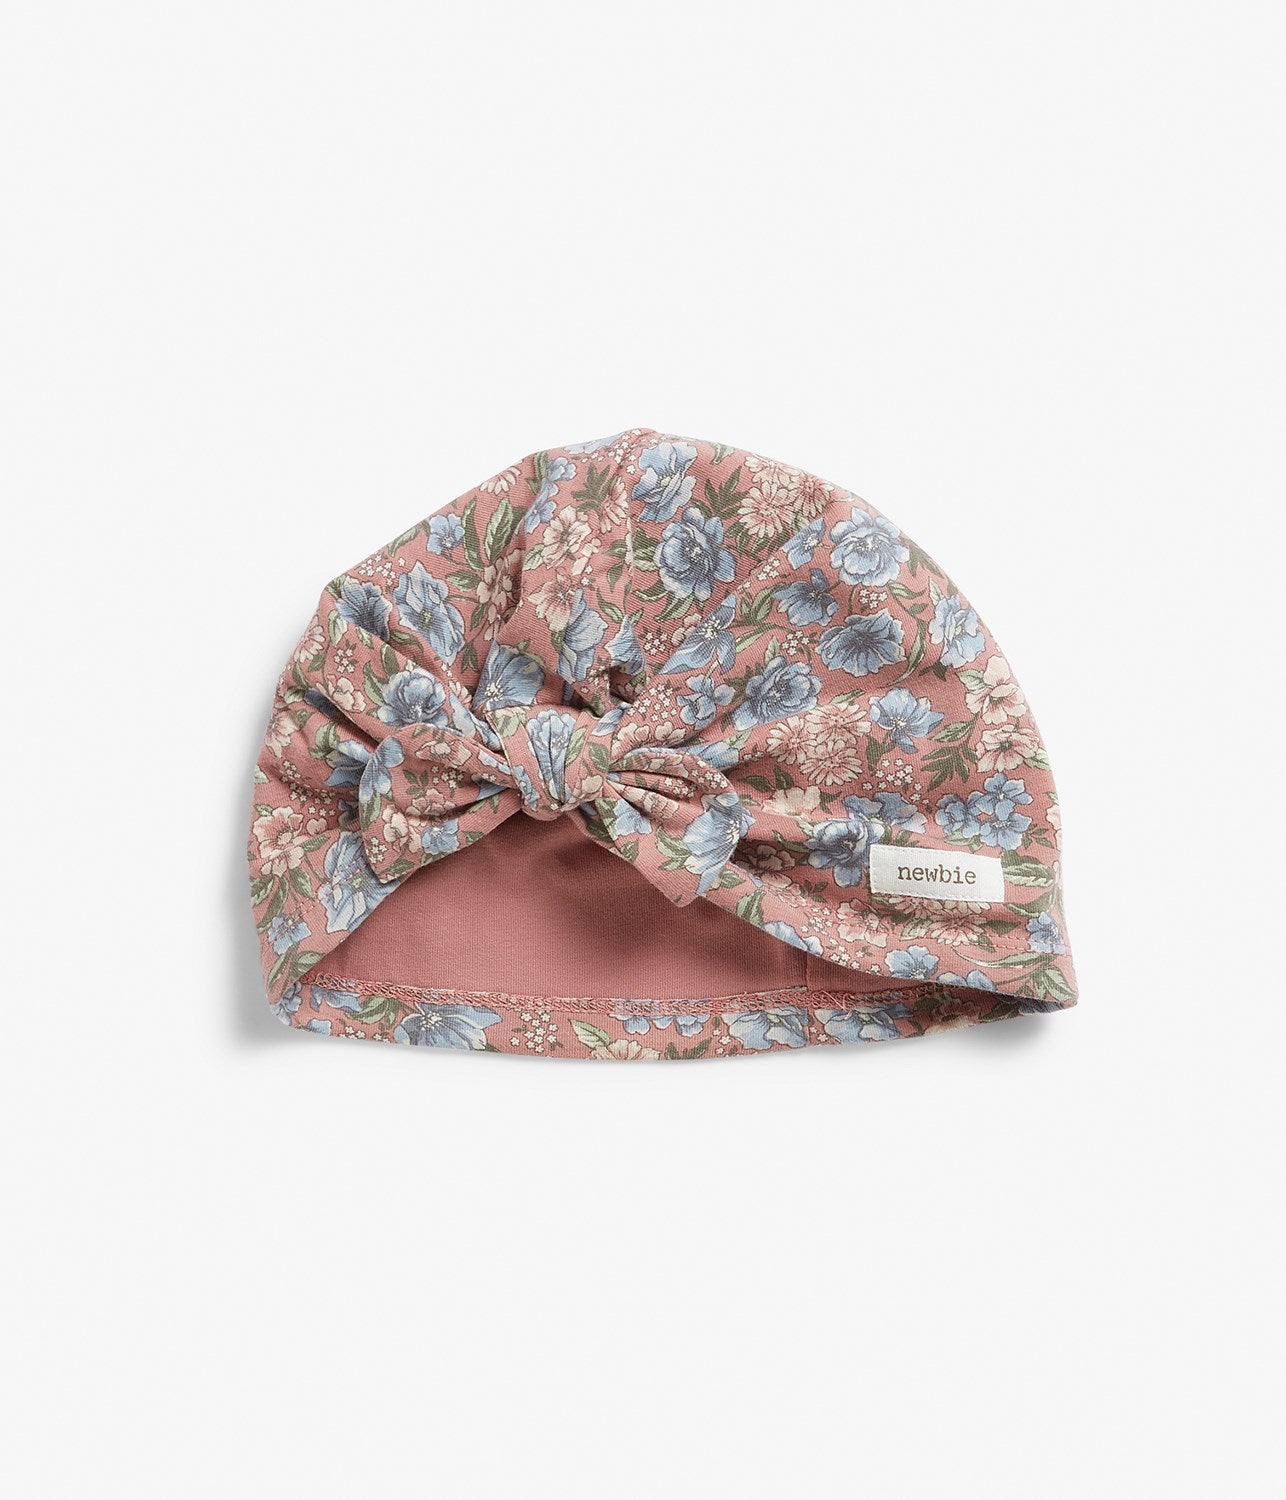 Baby floral print hat